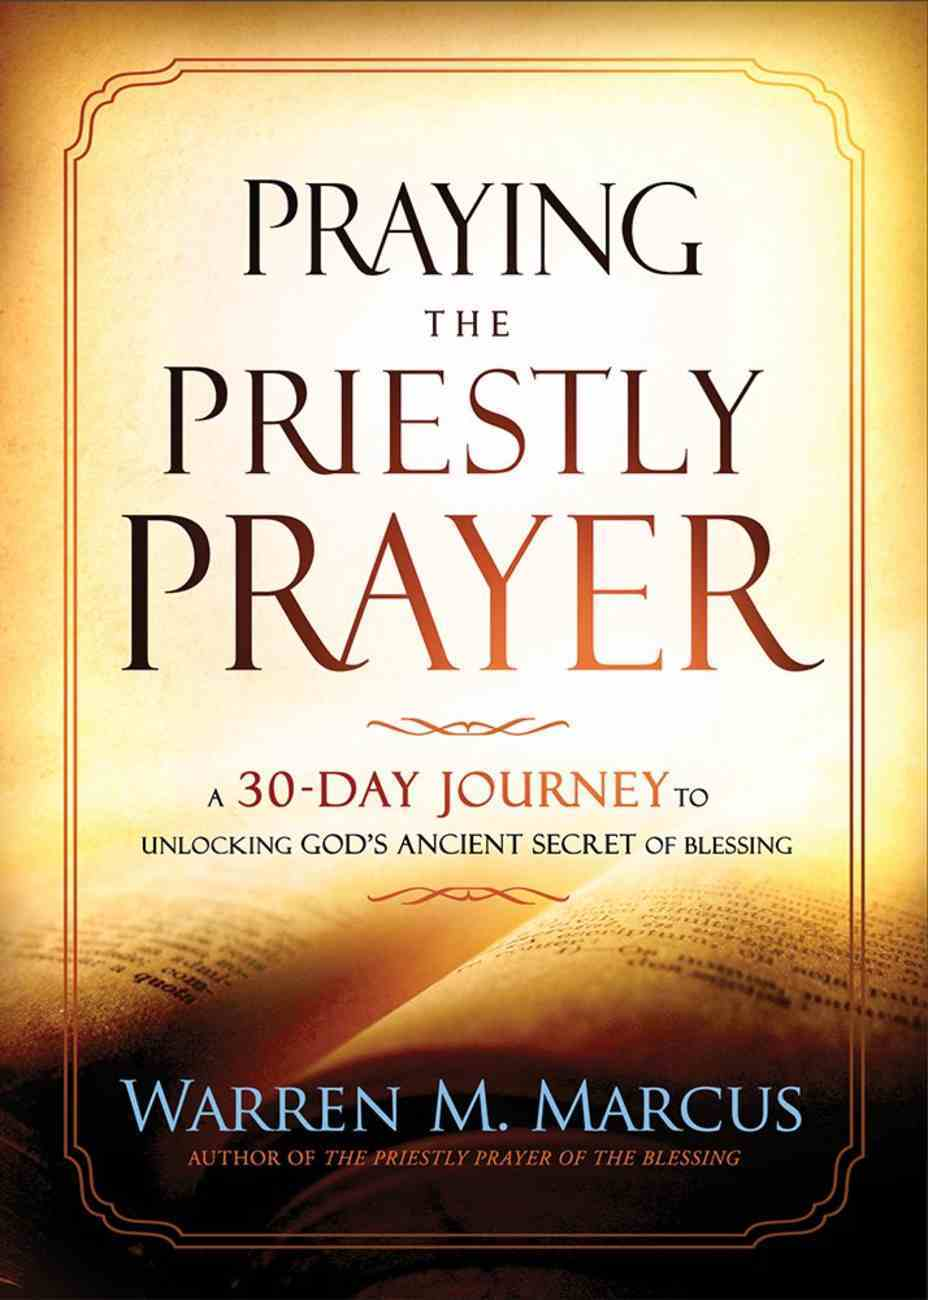 Praying the Priestly Prayer: A 30-Day Journey to Unlocking God's Ancient Secret of Blessing Paperback